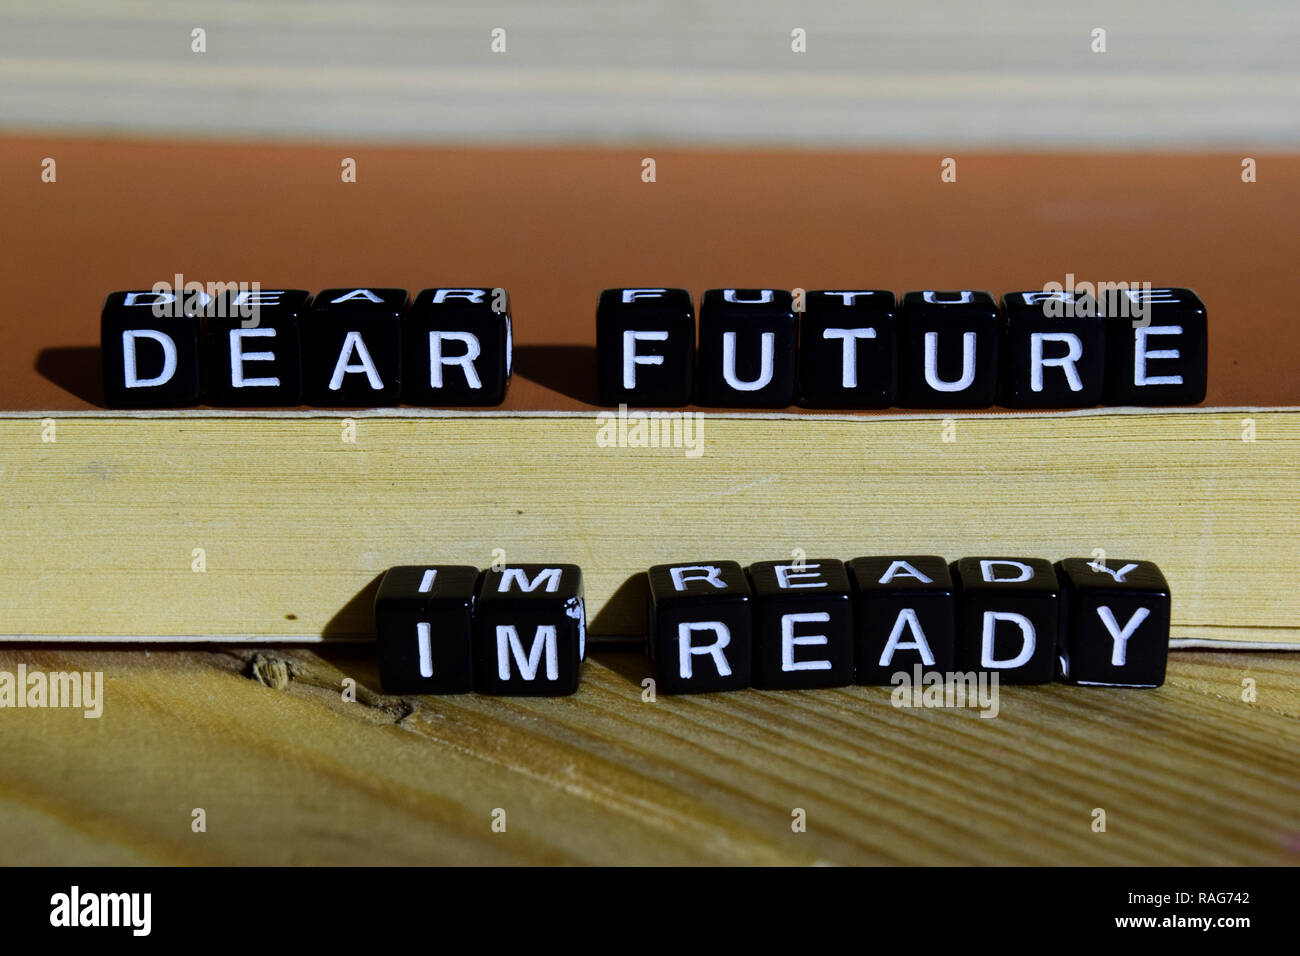 Dear future I'm ready on wooden blocks. Motivation and inspiration concept. Cross processed image - Stock Image